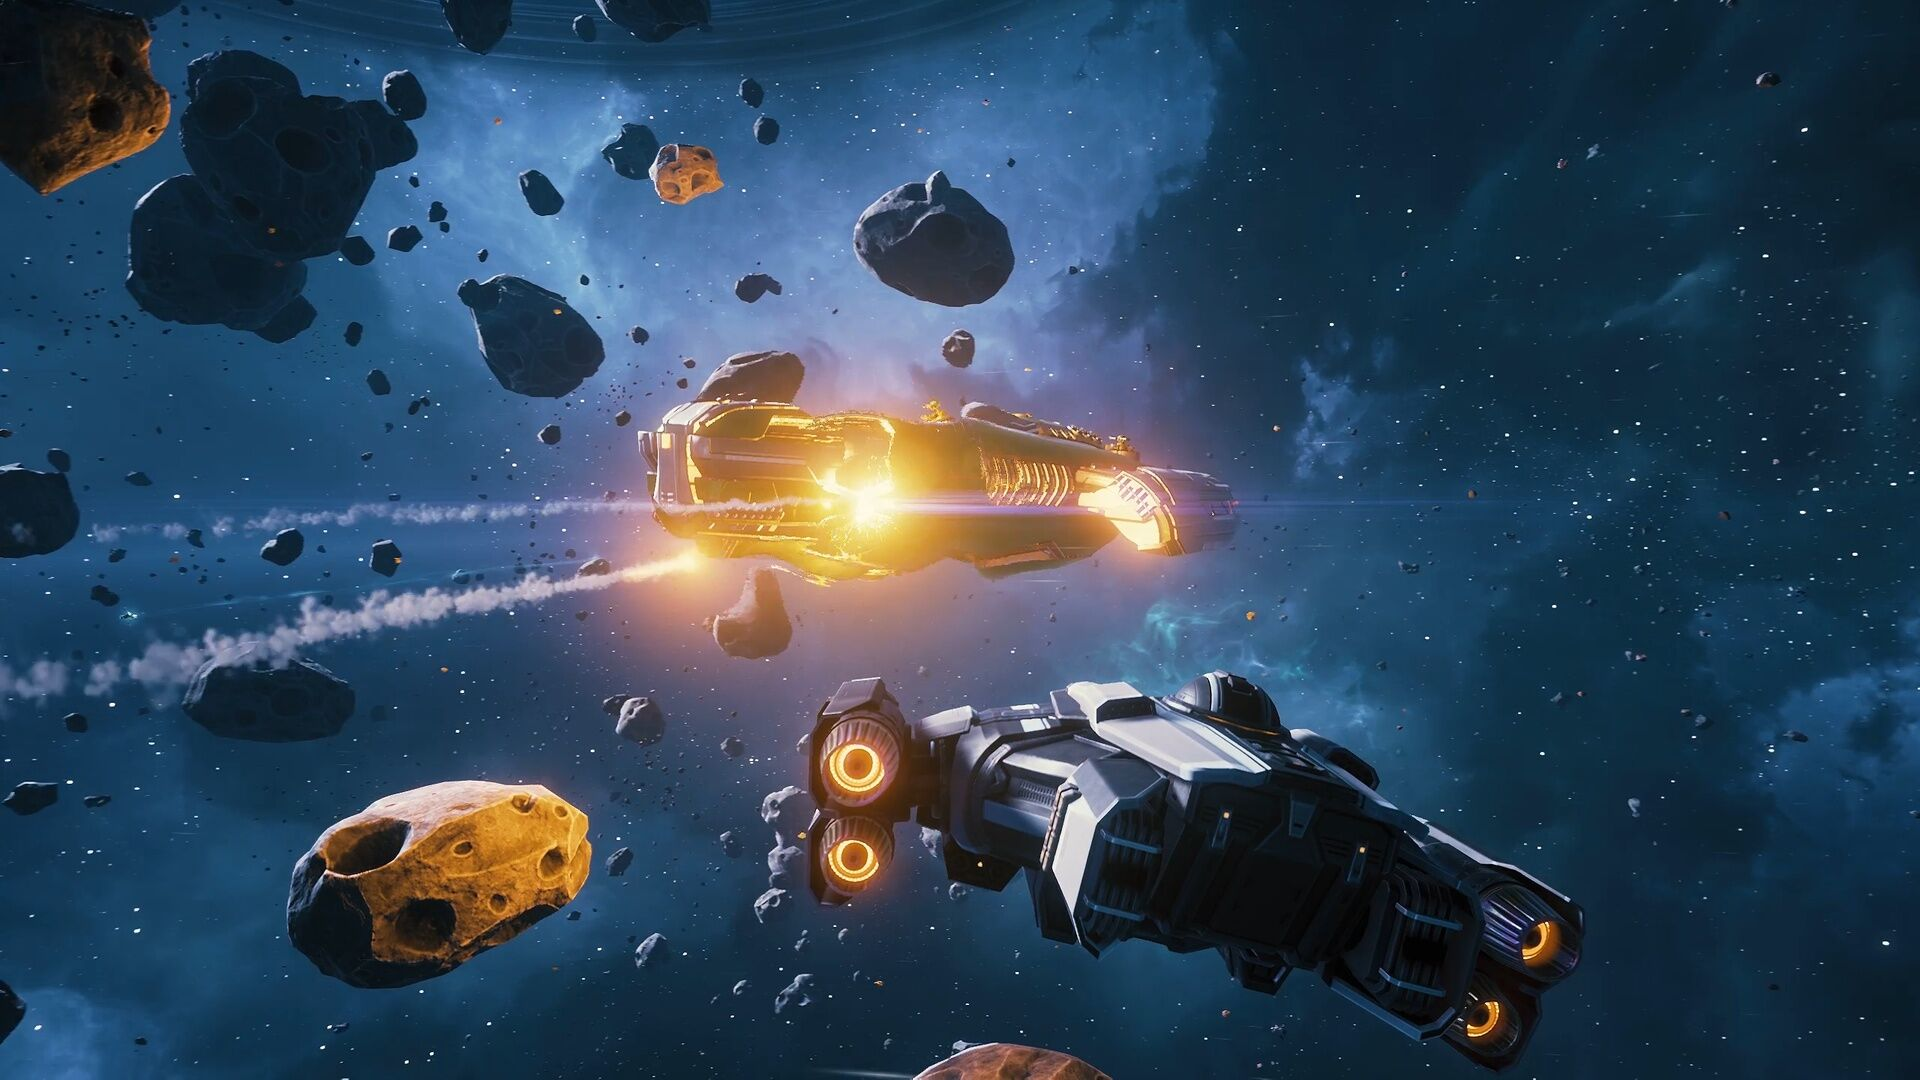 First Look: 'Everspace' is a Stunning VR Space Shooter That